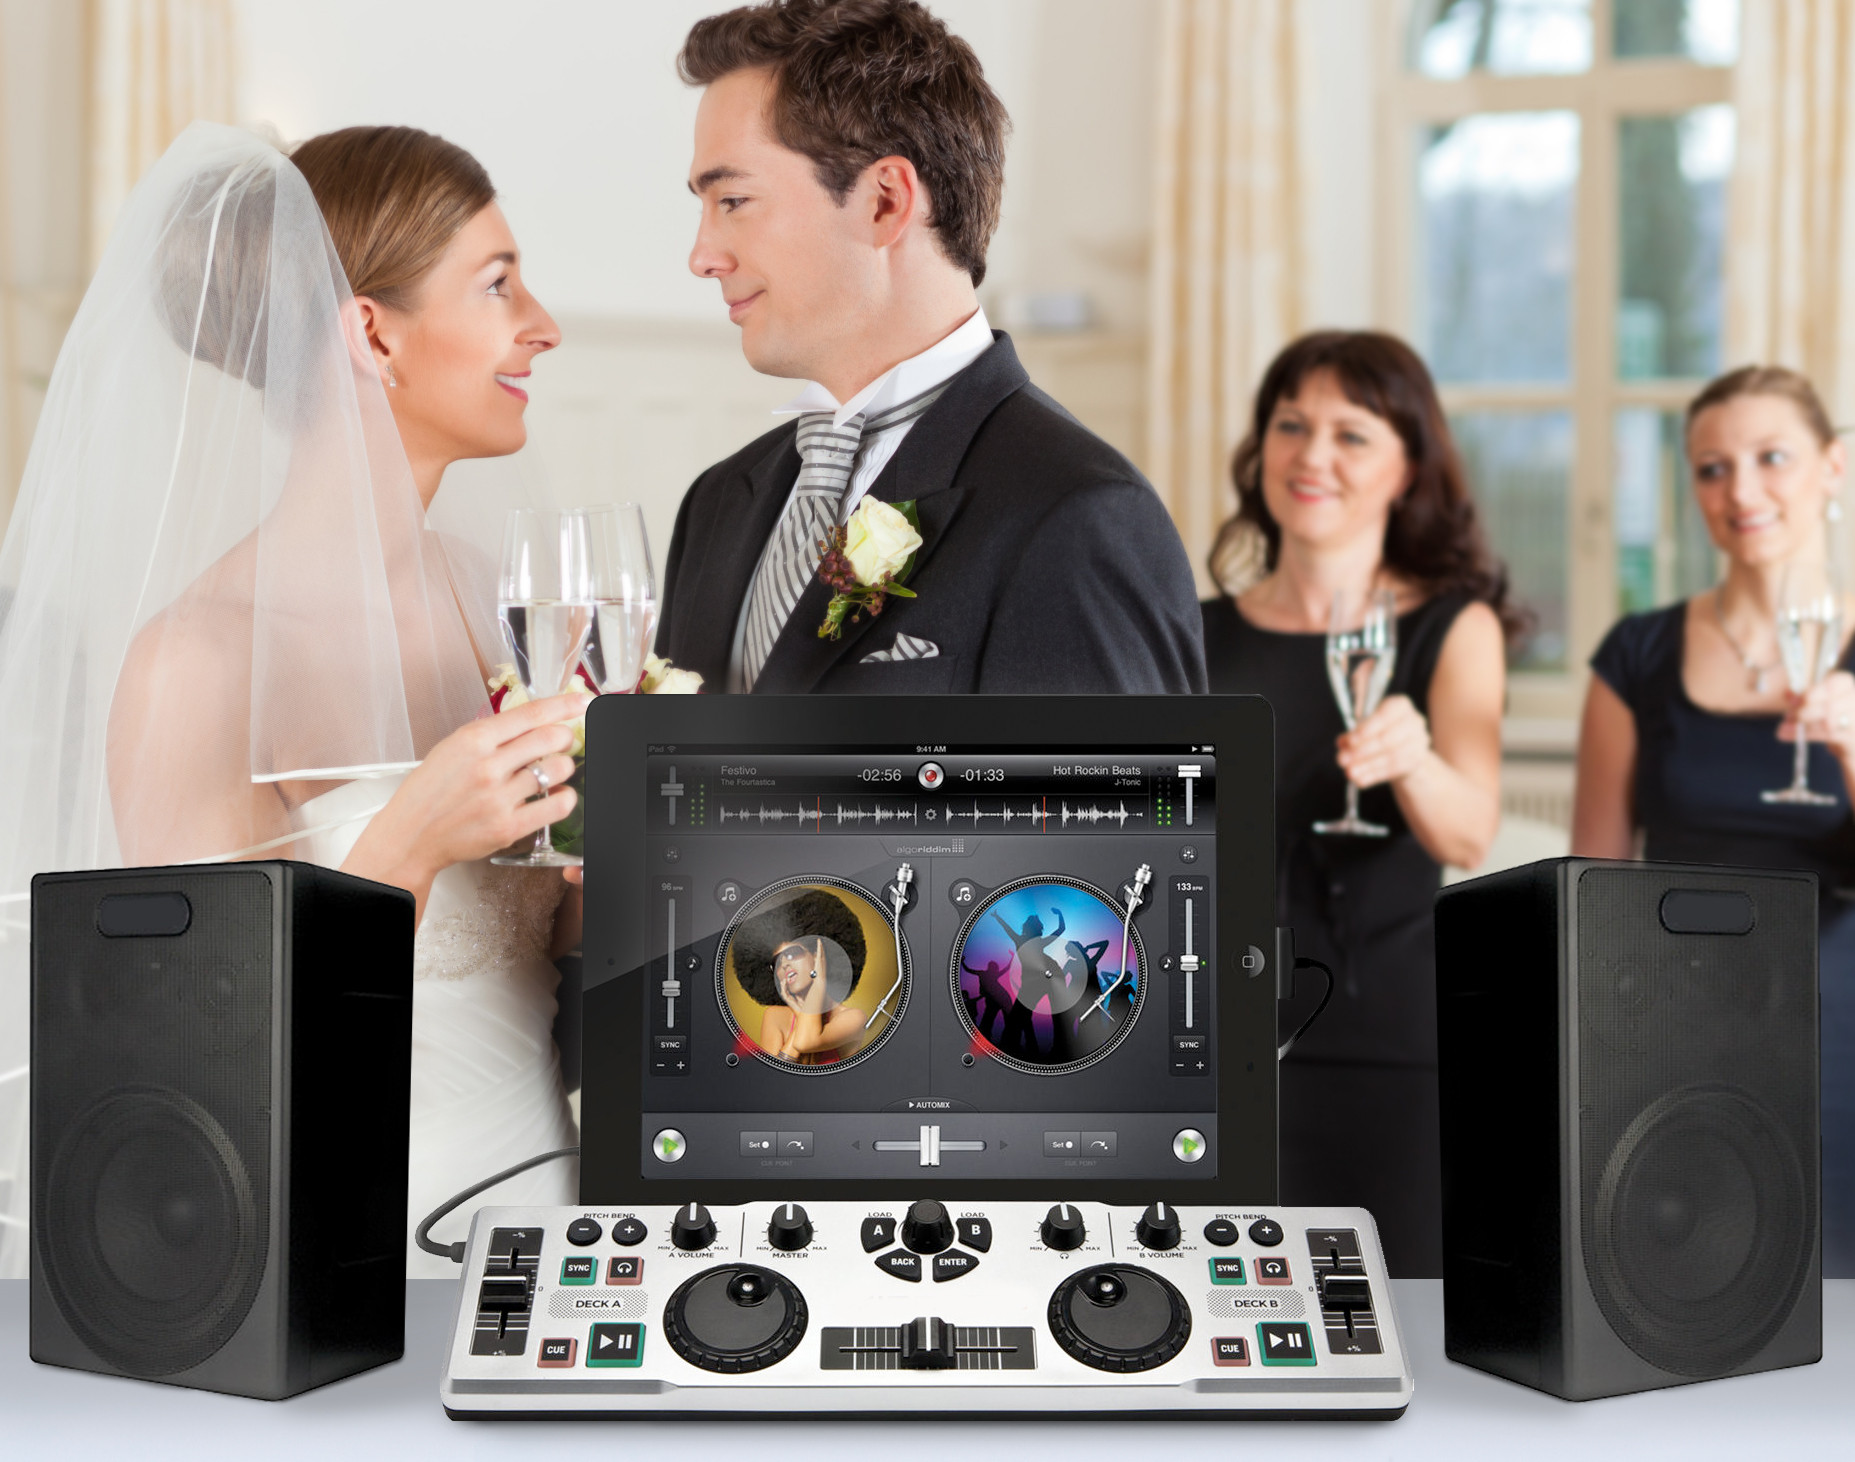 Best ideas about DIY Wedding Dj . Save or Pin B&H Wedding Guide Do It Yourself DJ Systems Now.